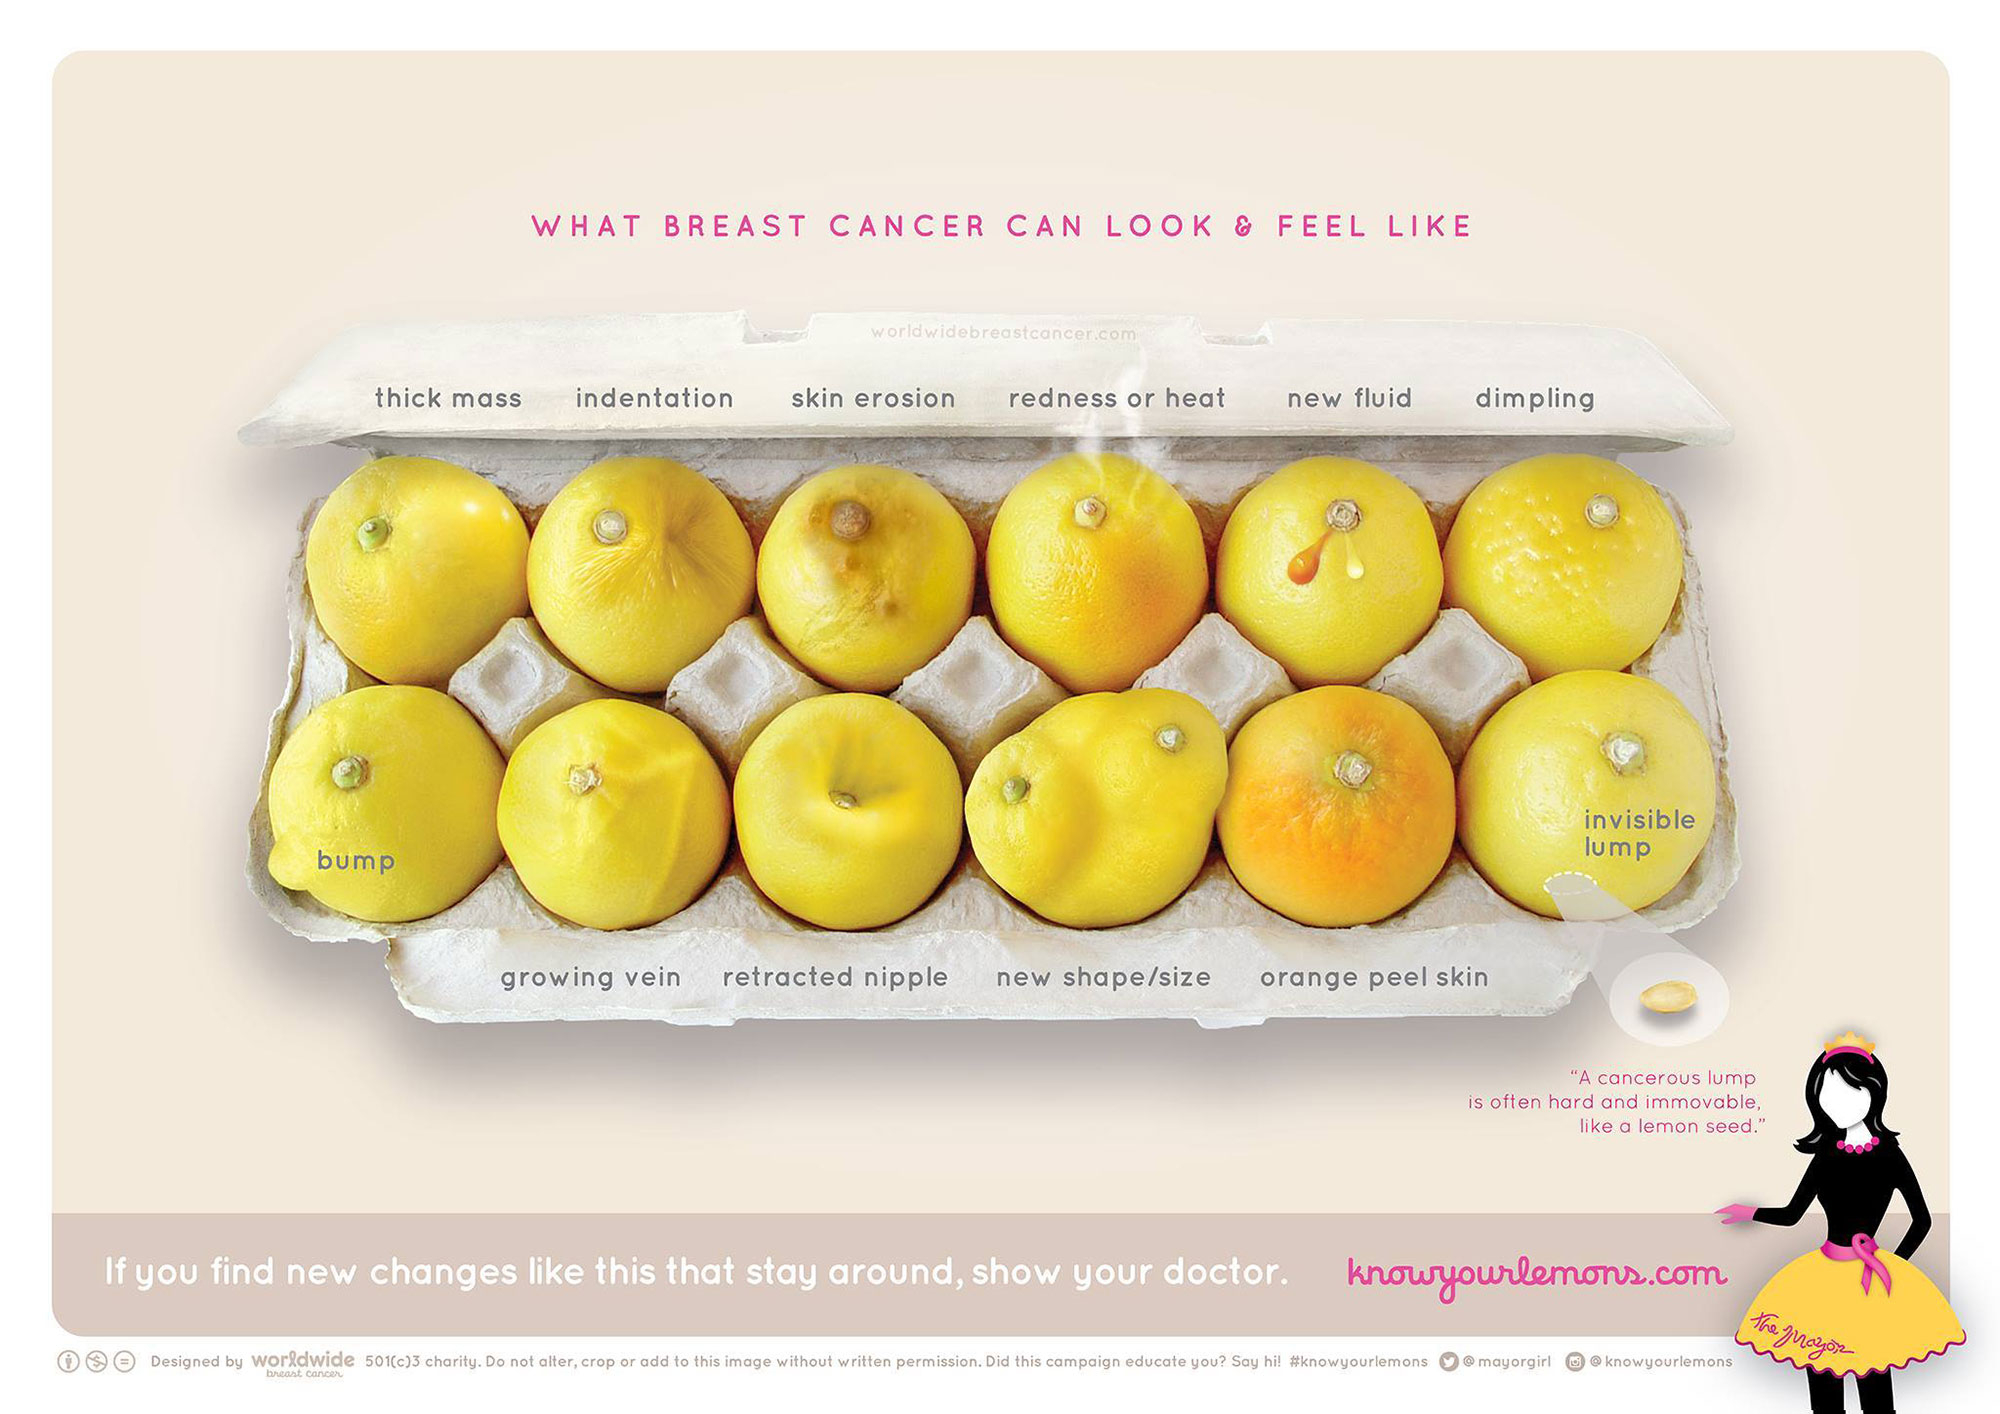 Worldwide Breast CancerWorldwide Breast Cancer's #knowyourlemons campaign